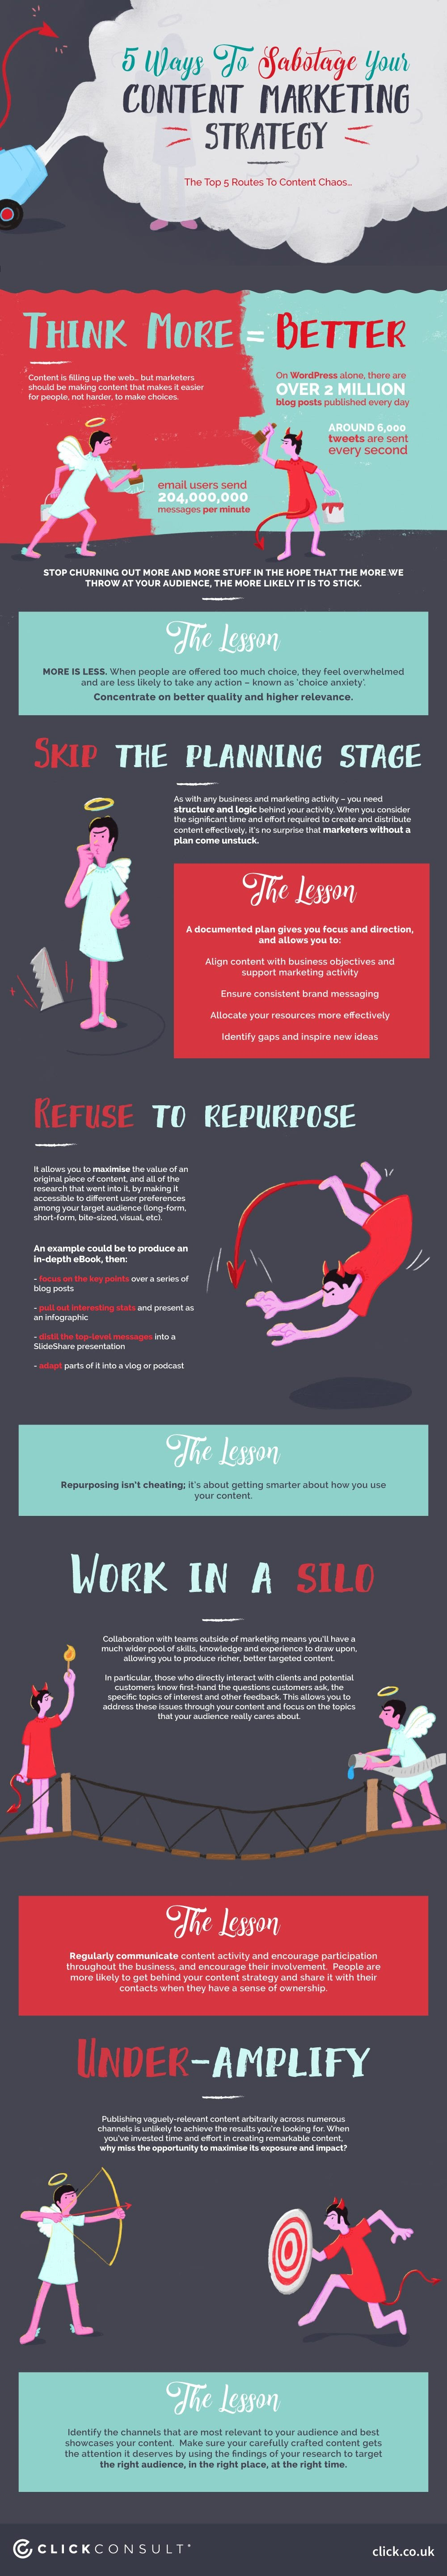 5 Ways to Sabotage Your Content Marketing Strategy - #Infographic